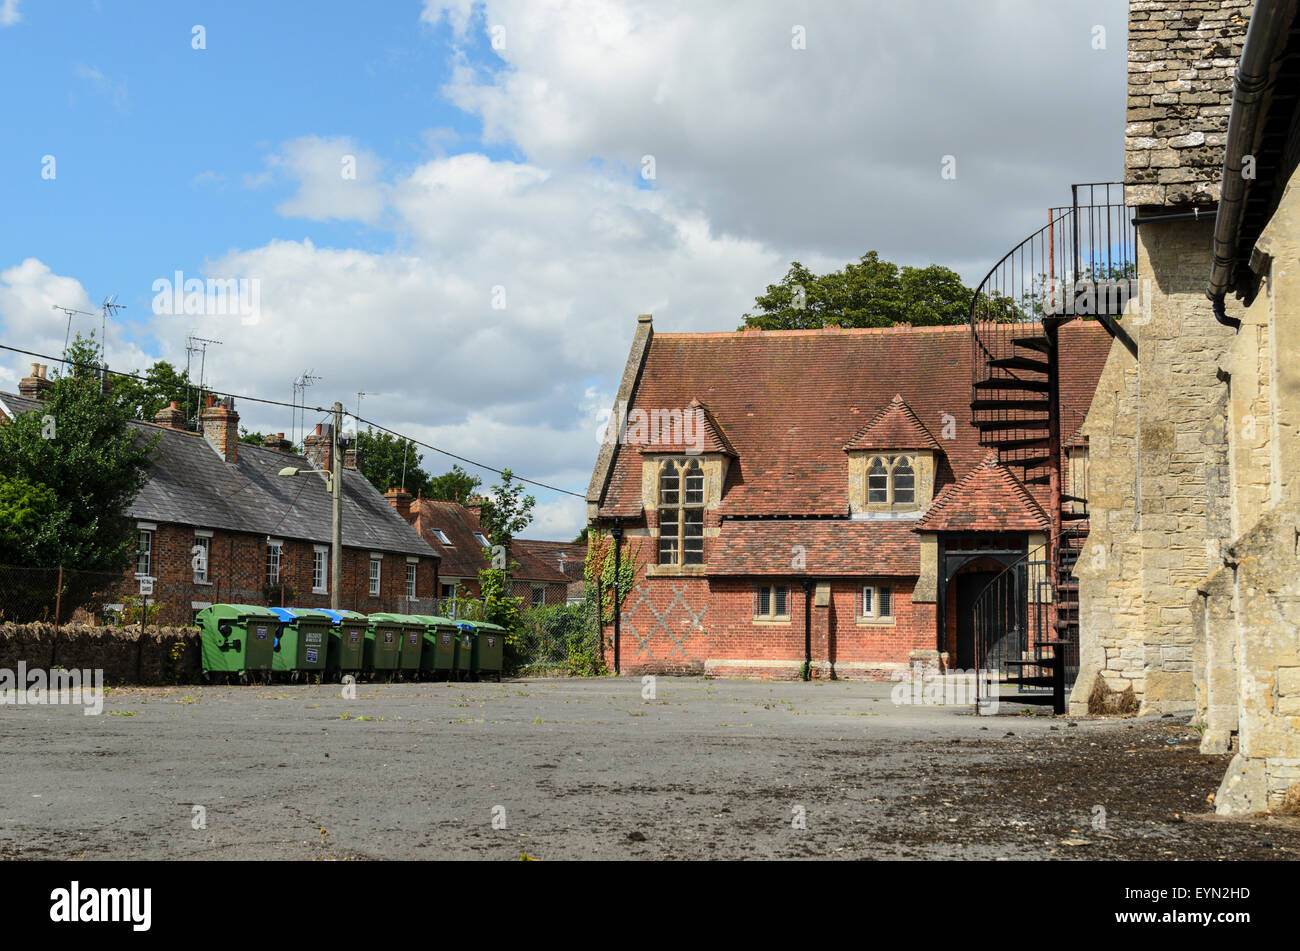 A schoolyard at King Alfred's School, Wantage, Oxfordshire, England, UK - Stock Image